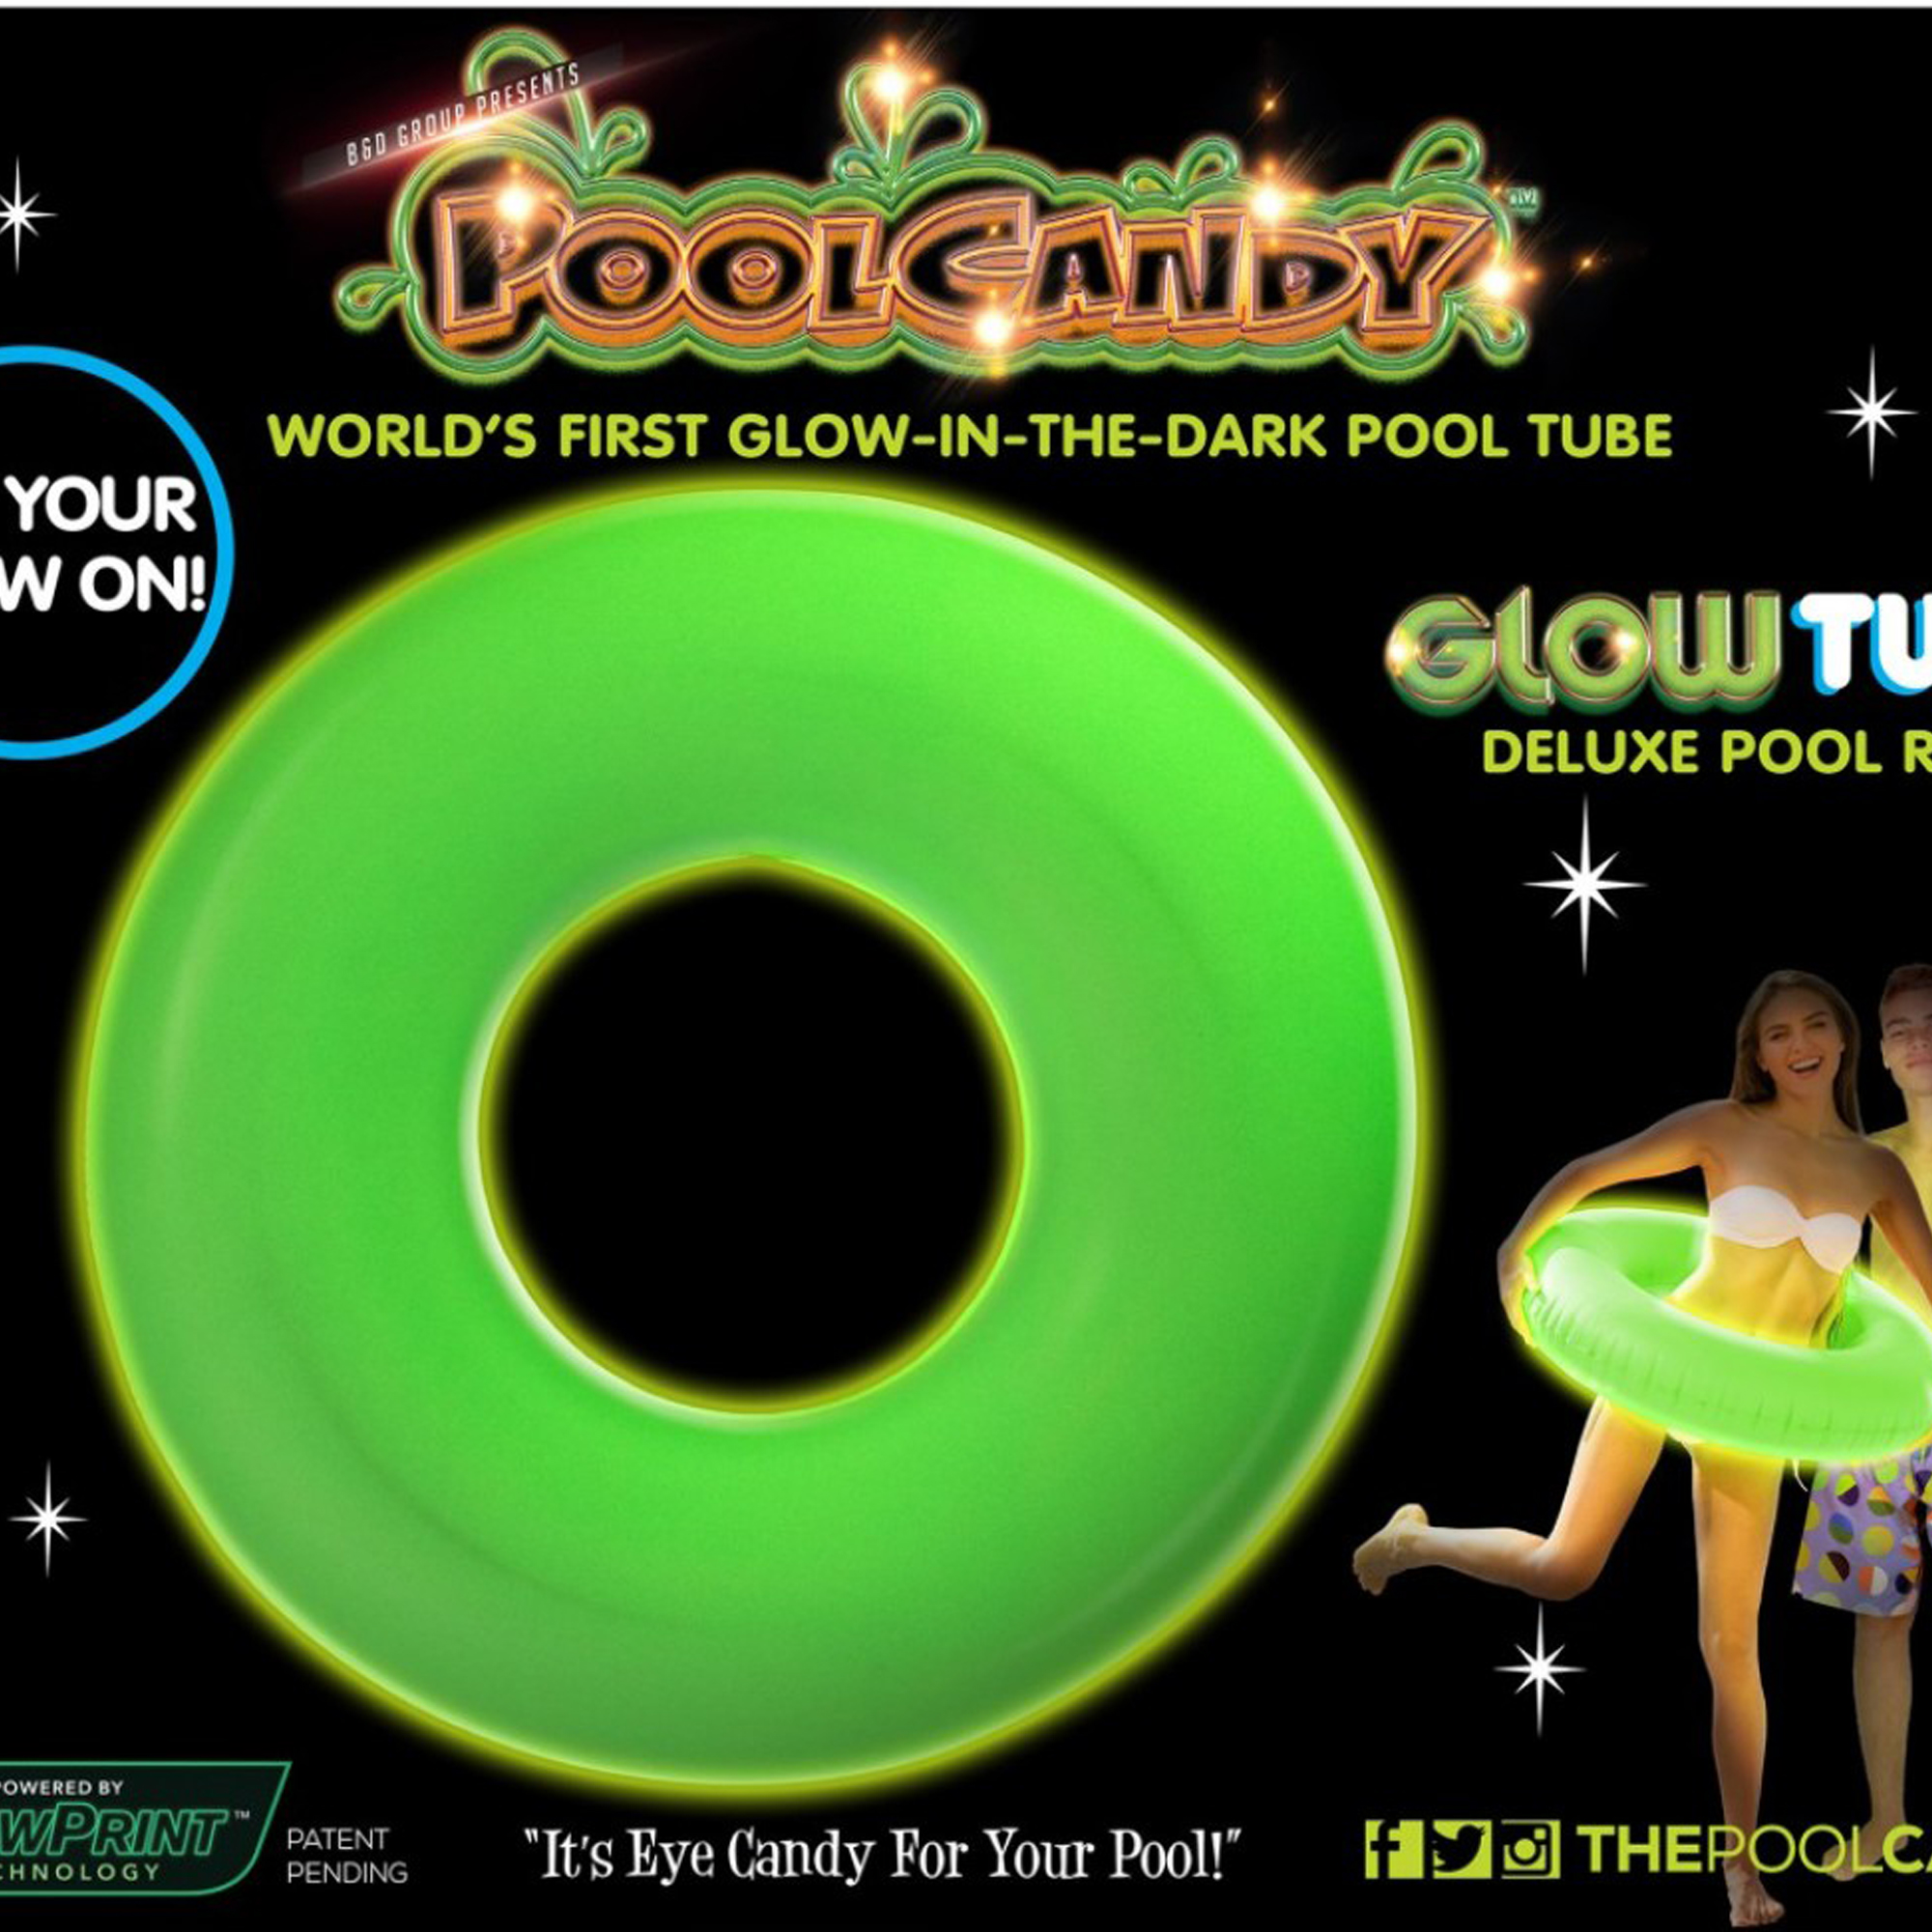 Pool candy swimming pool inflatable glow in the dark pool - Glow in the dark swimming pool toys ...